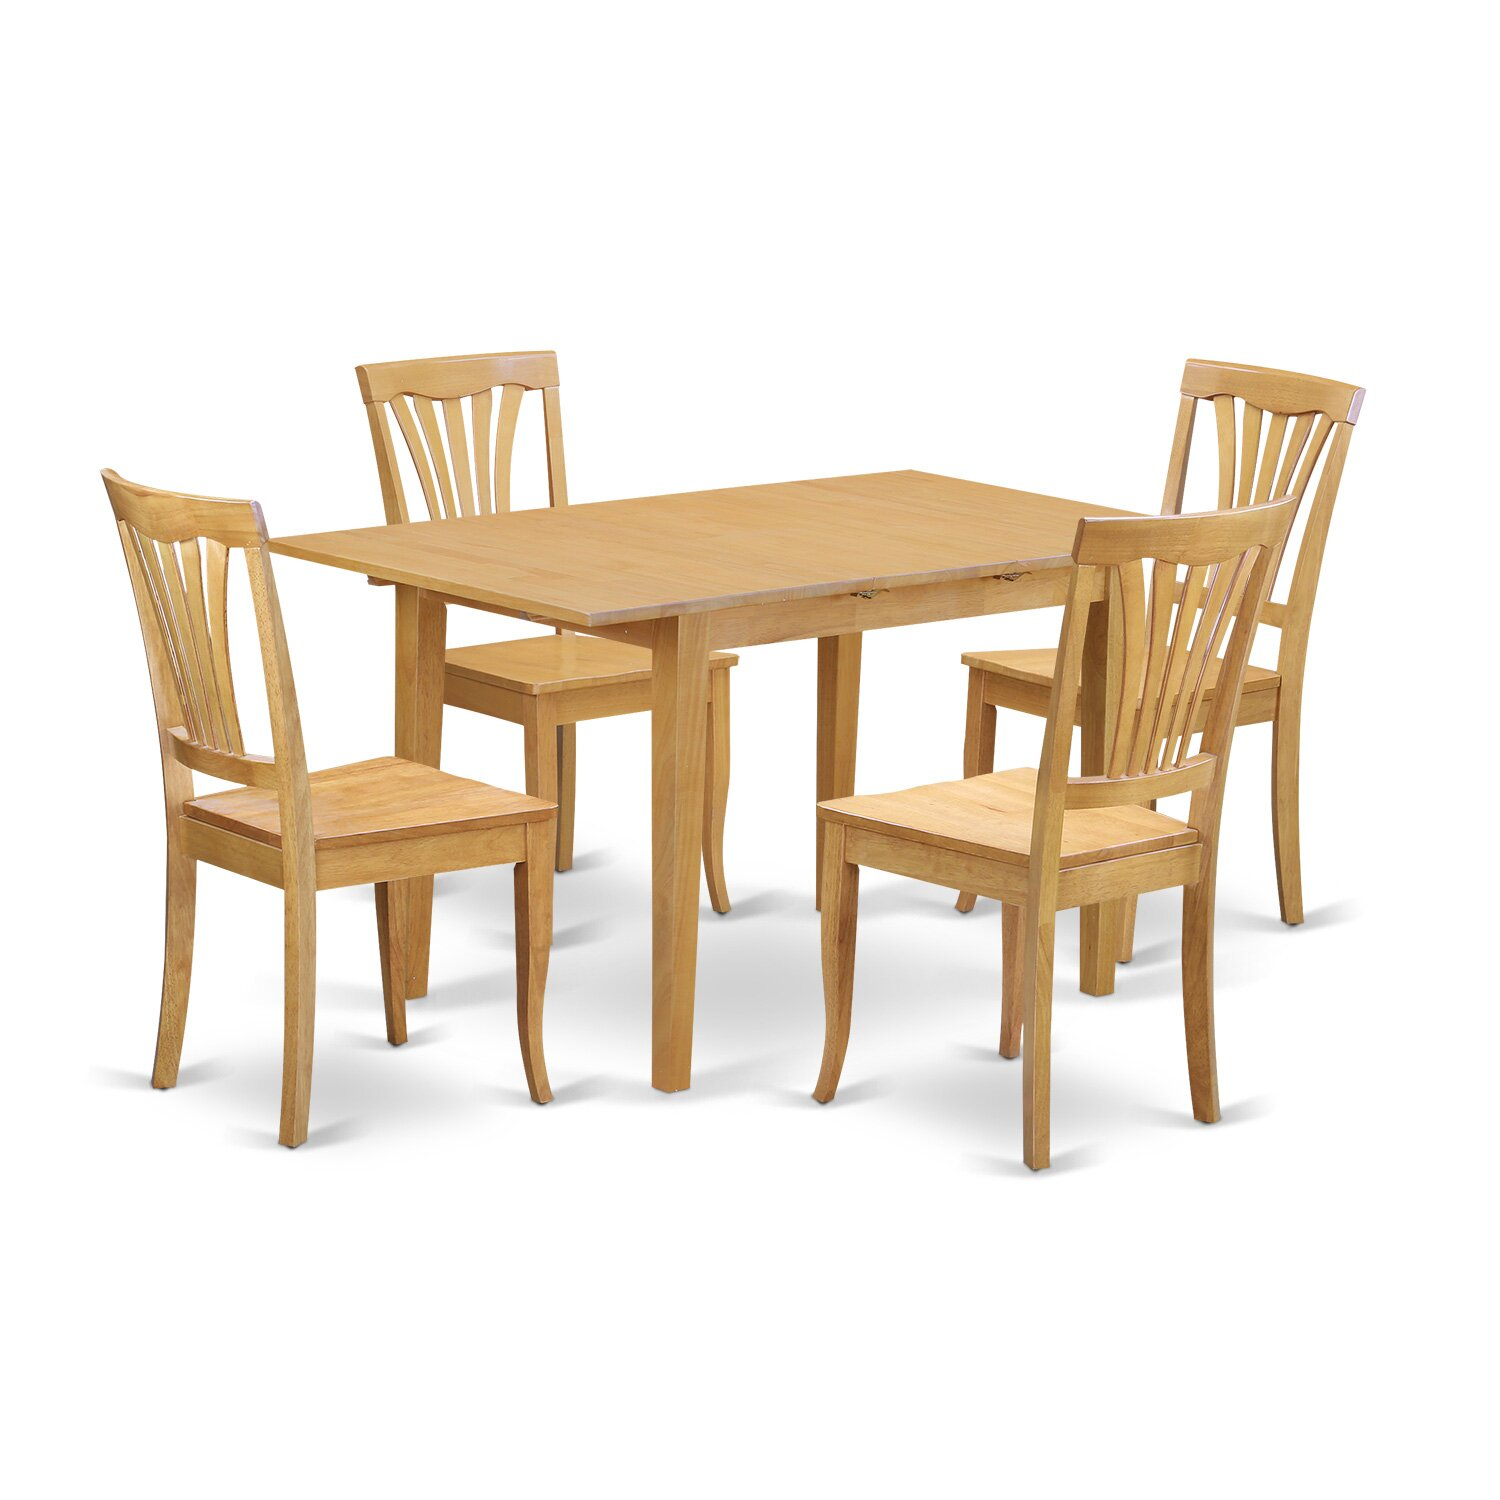 East west norfolk 5 piece dining set wayfair for Dinette furniture